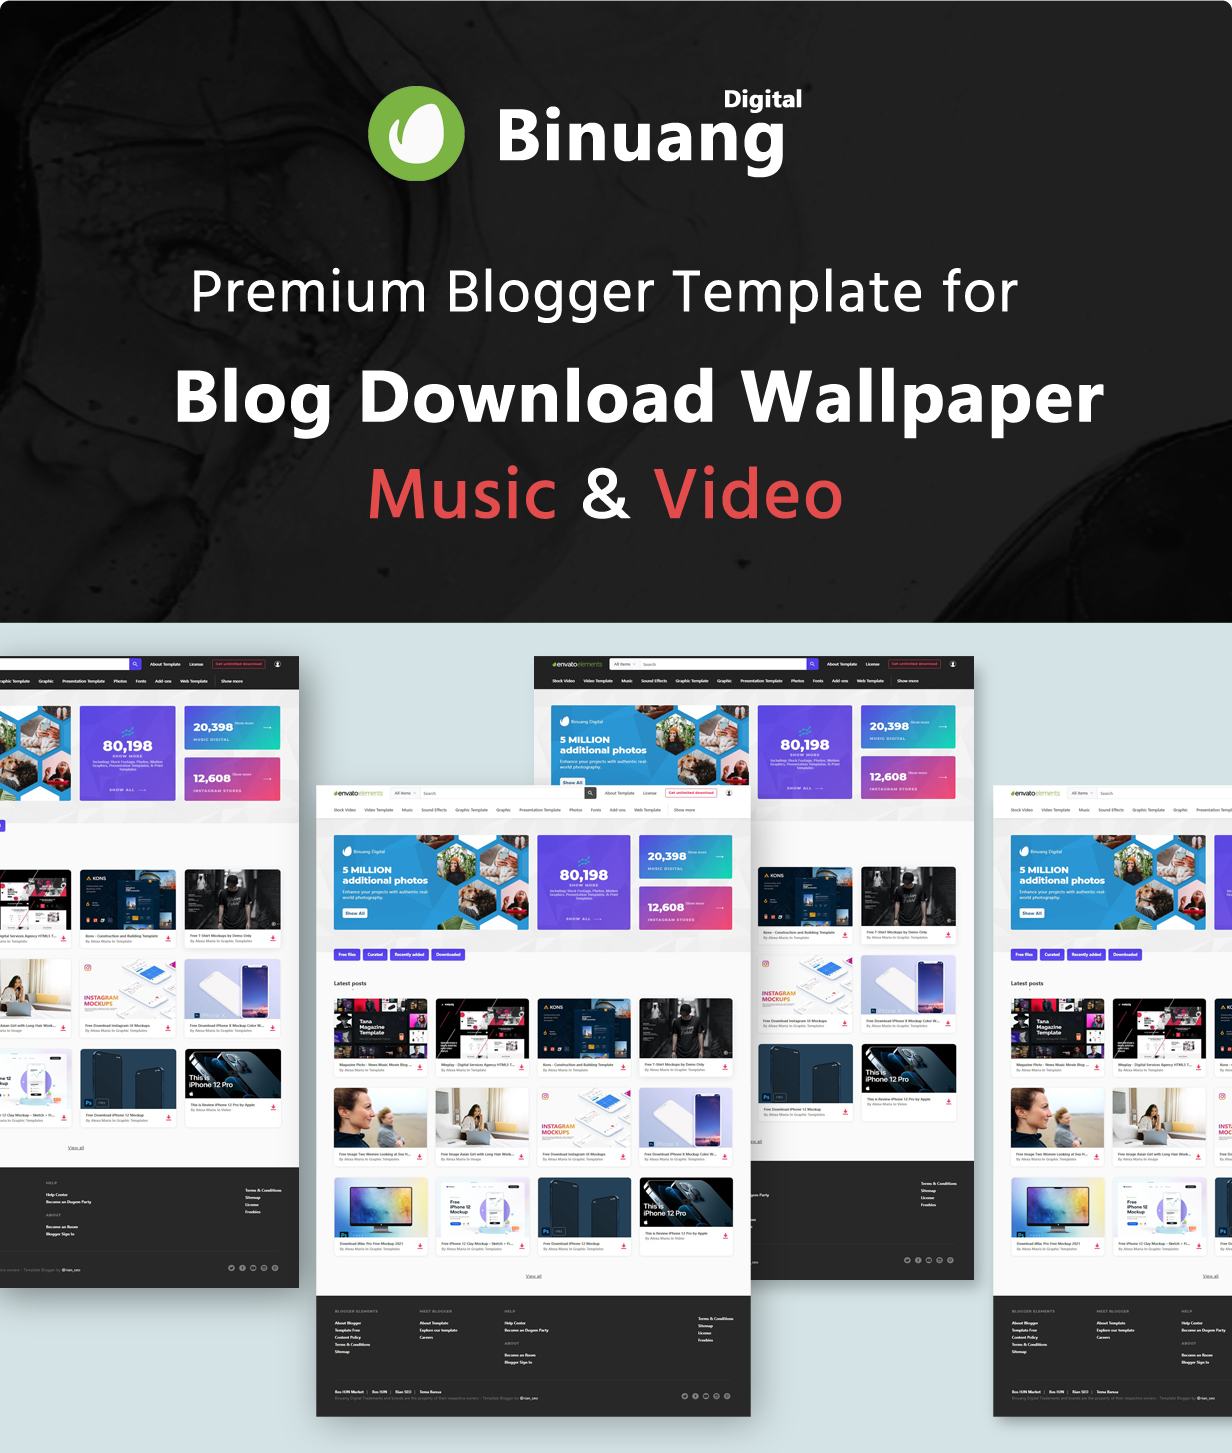 Binuang Digital - Blogger Template for Blog Download